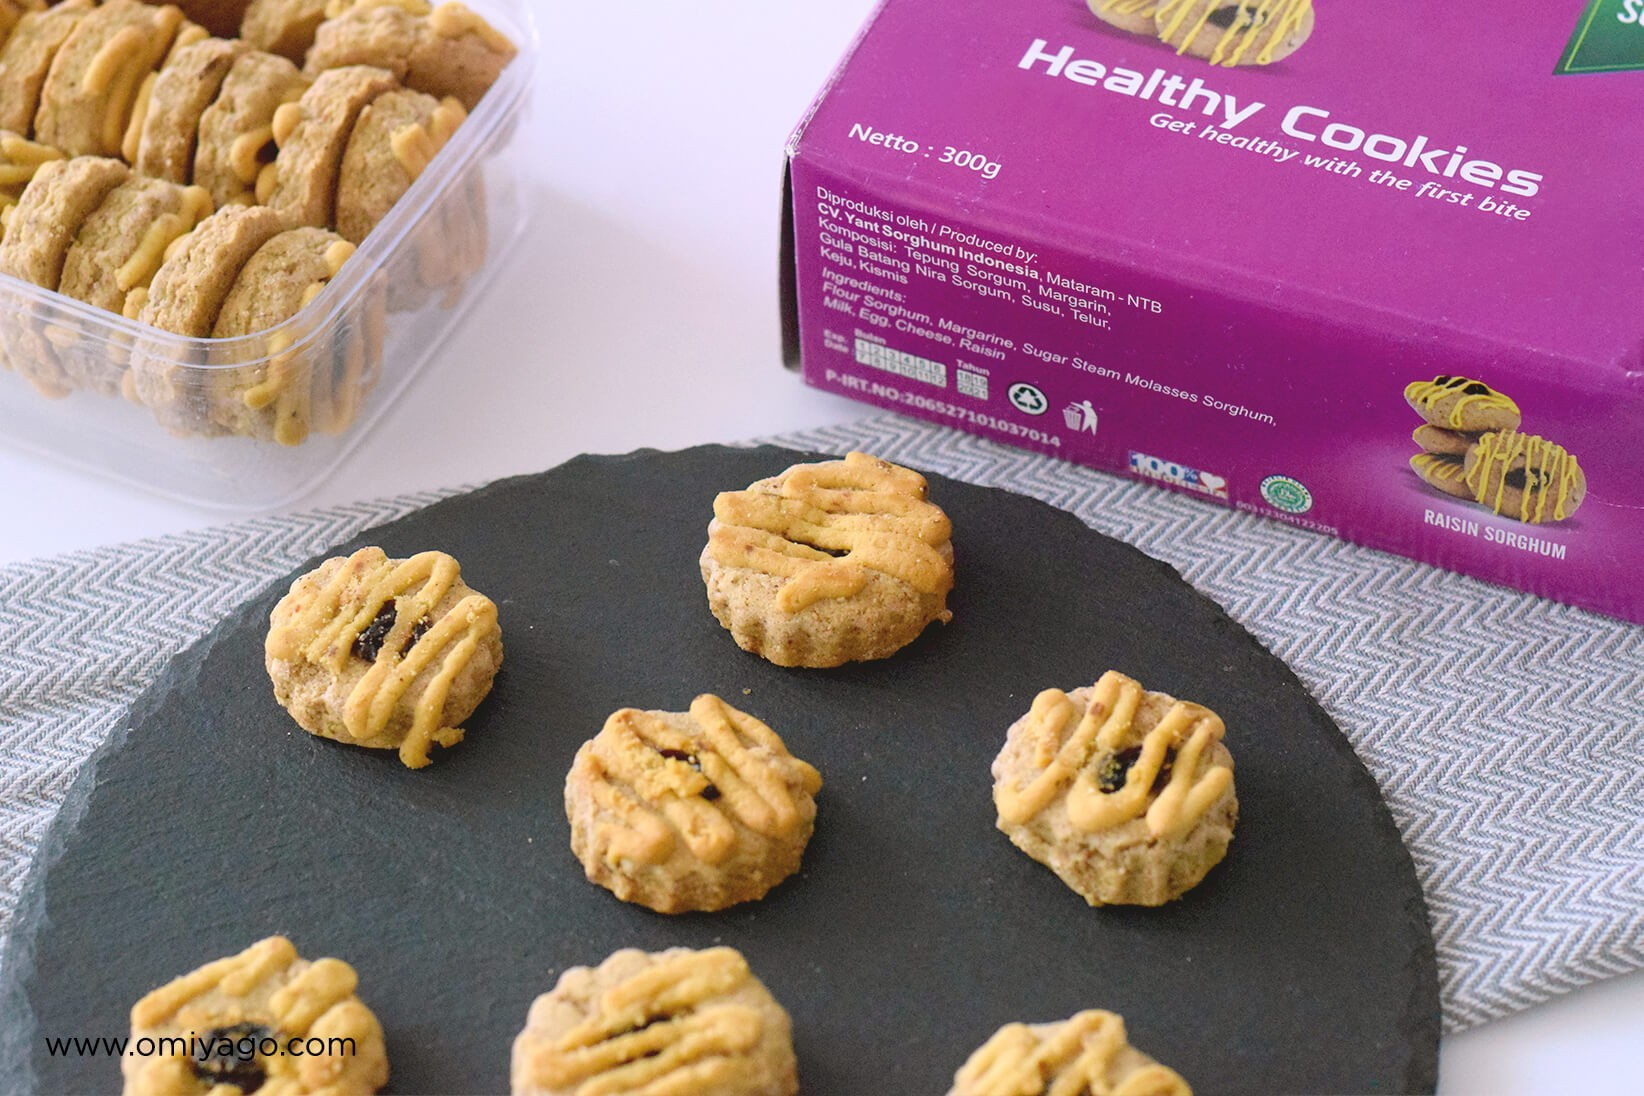 Healthy_Cookies_Raisin_Sorghum